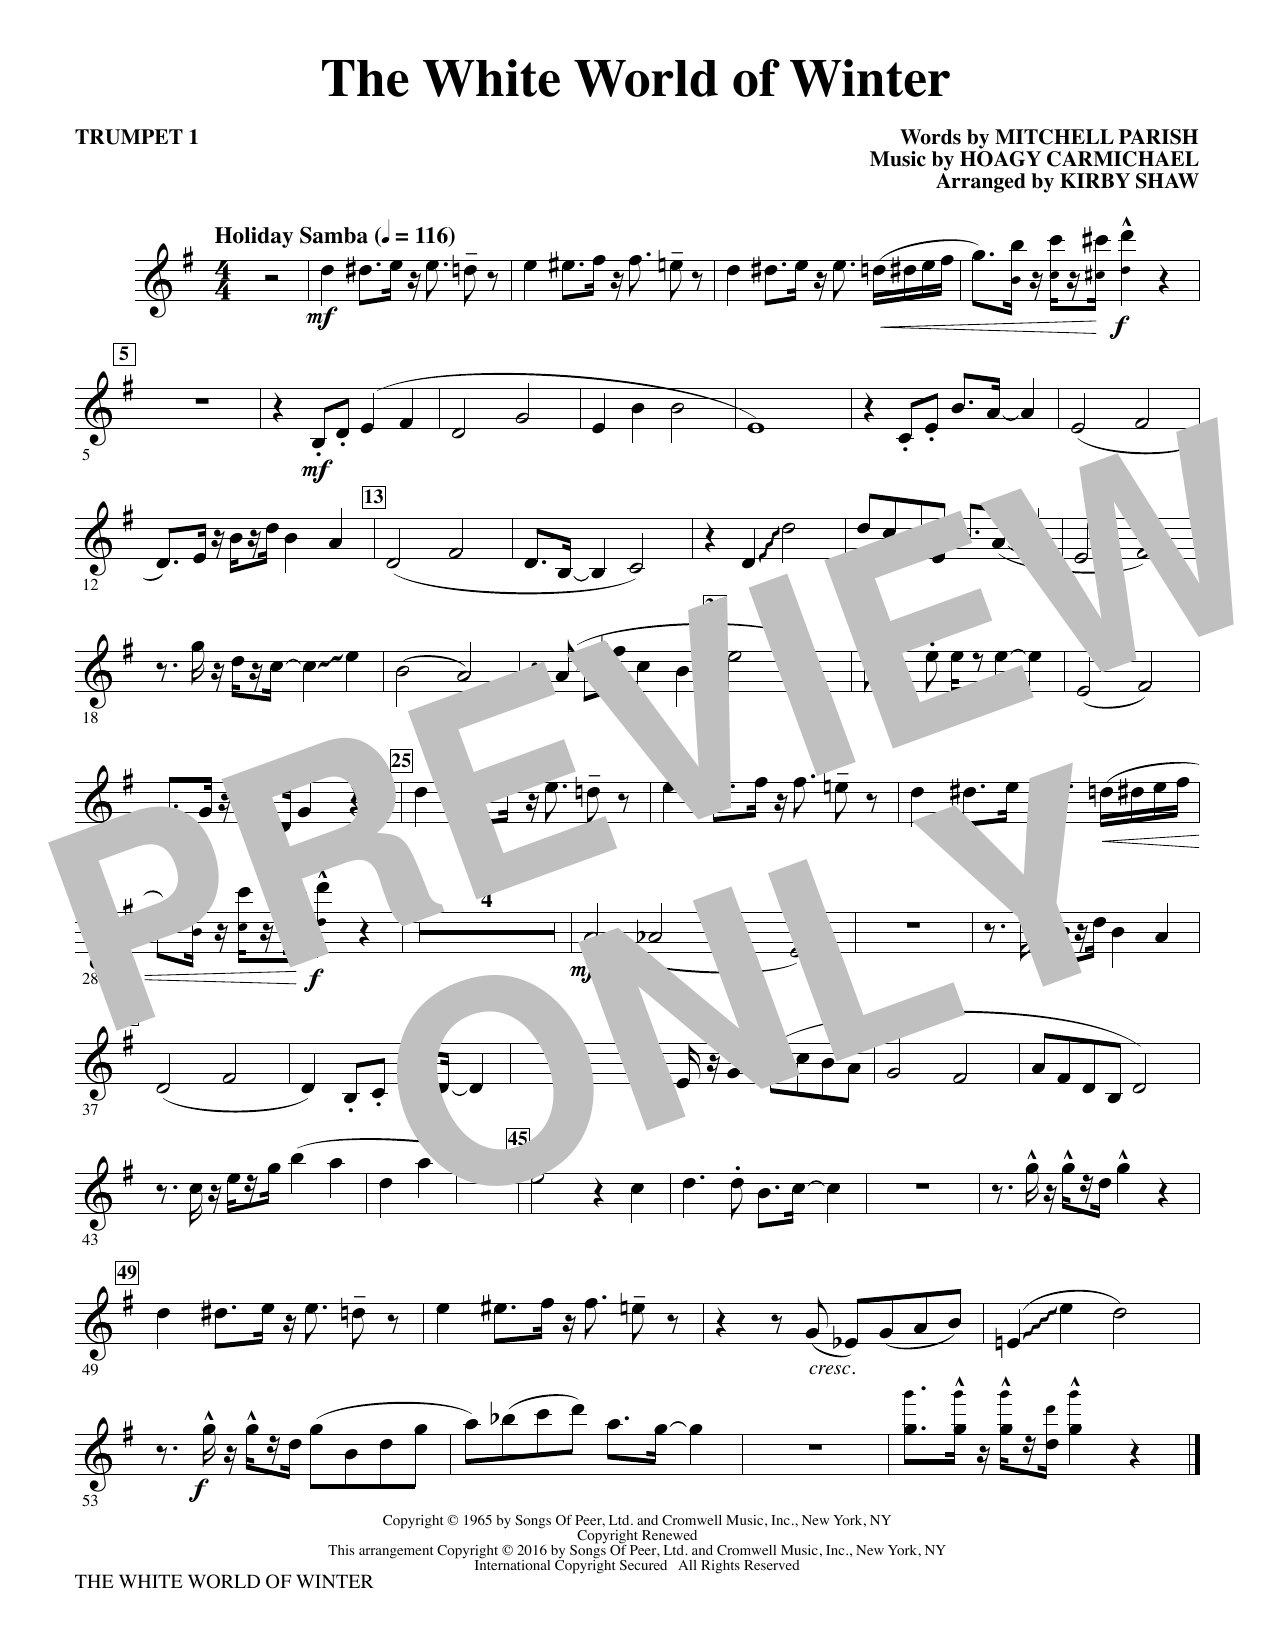 The White World of Winter (complete set of parts) sheet music for orchestra/band by Hoagy Carmichael